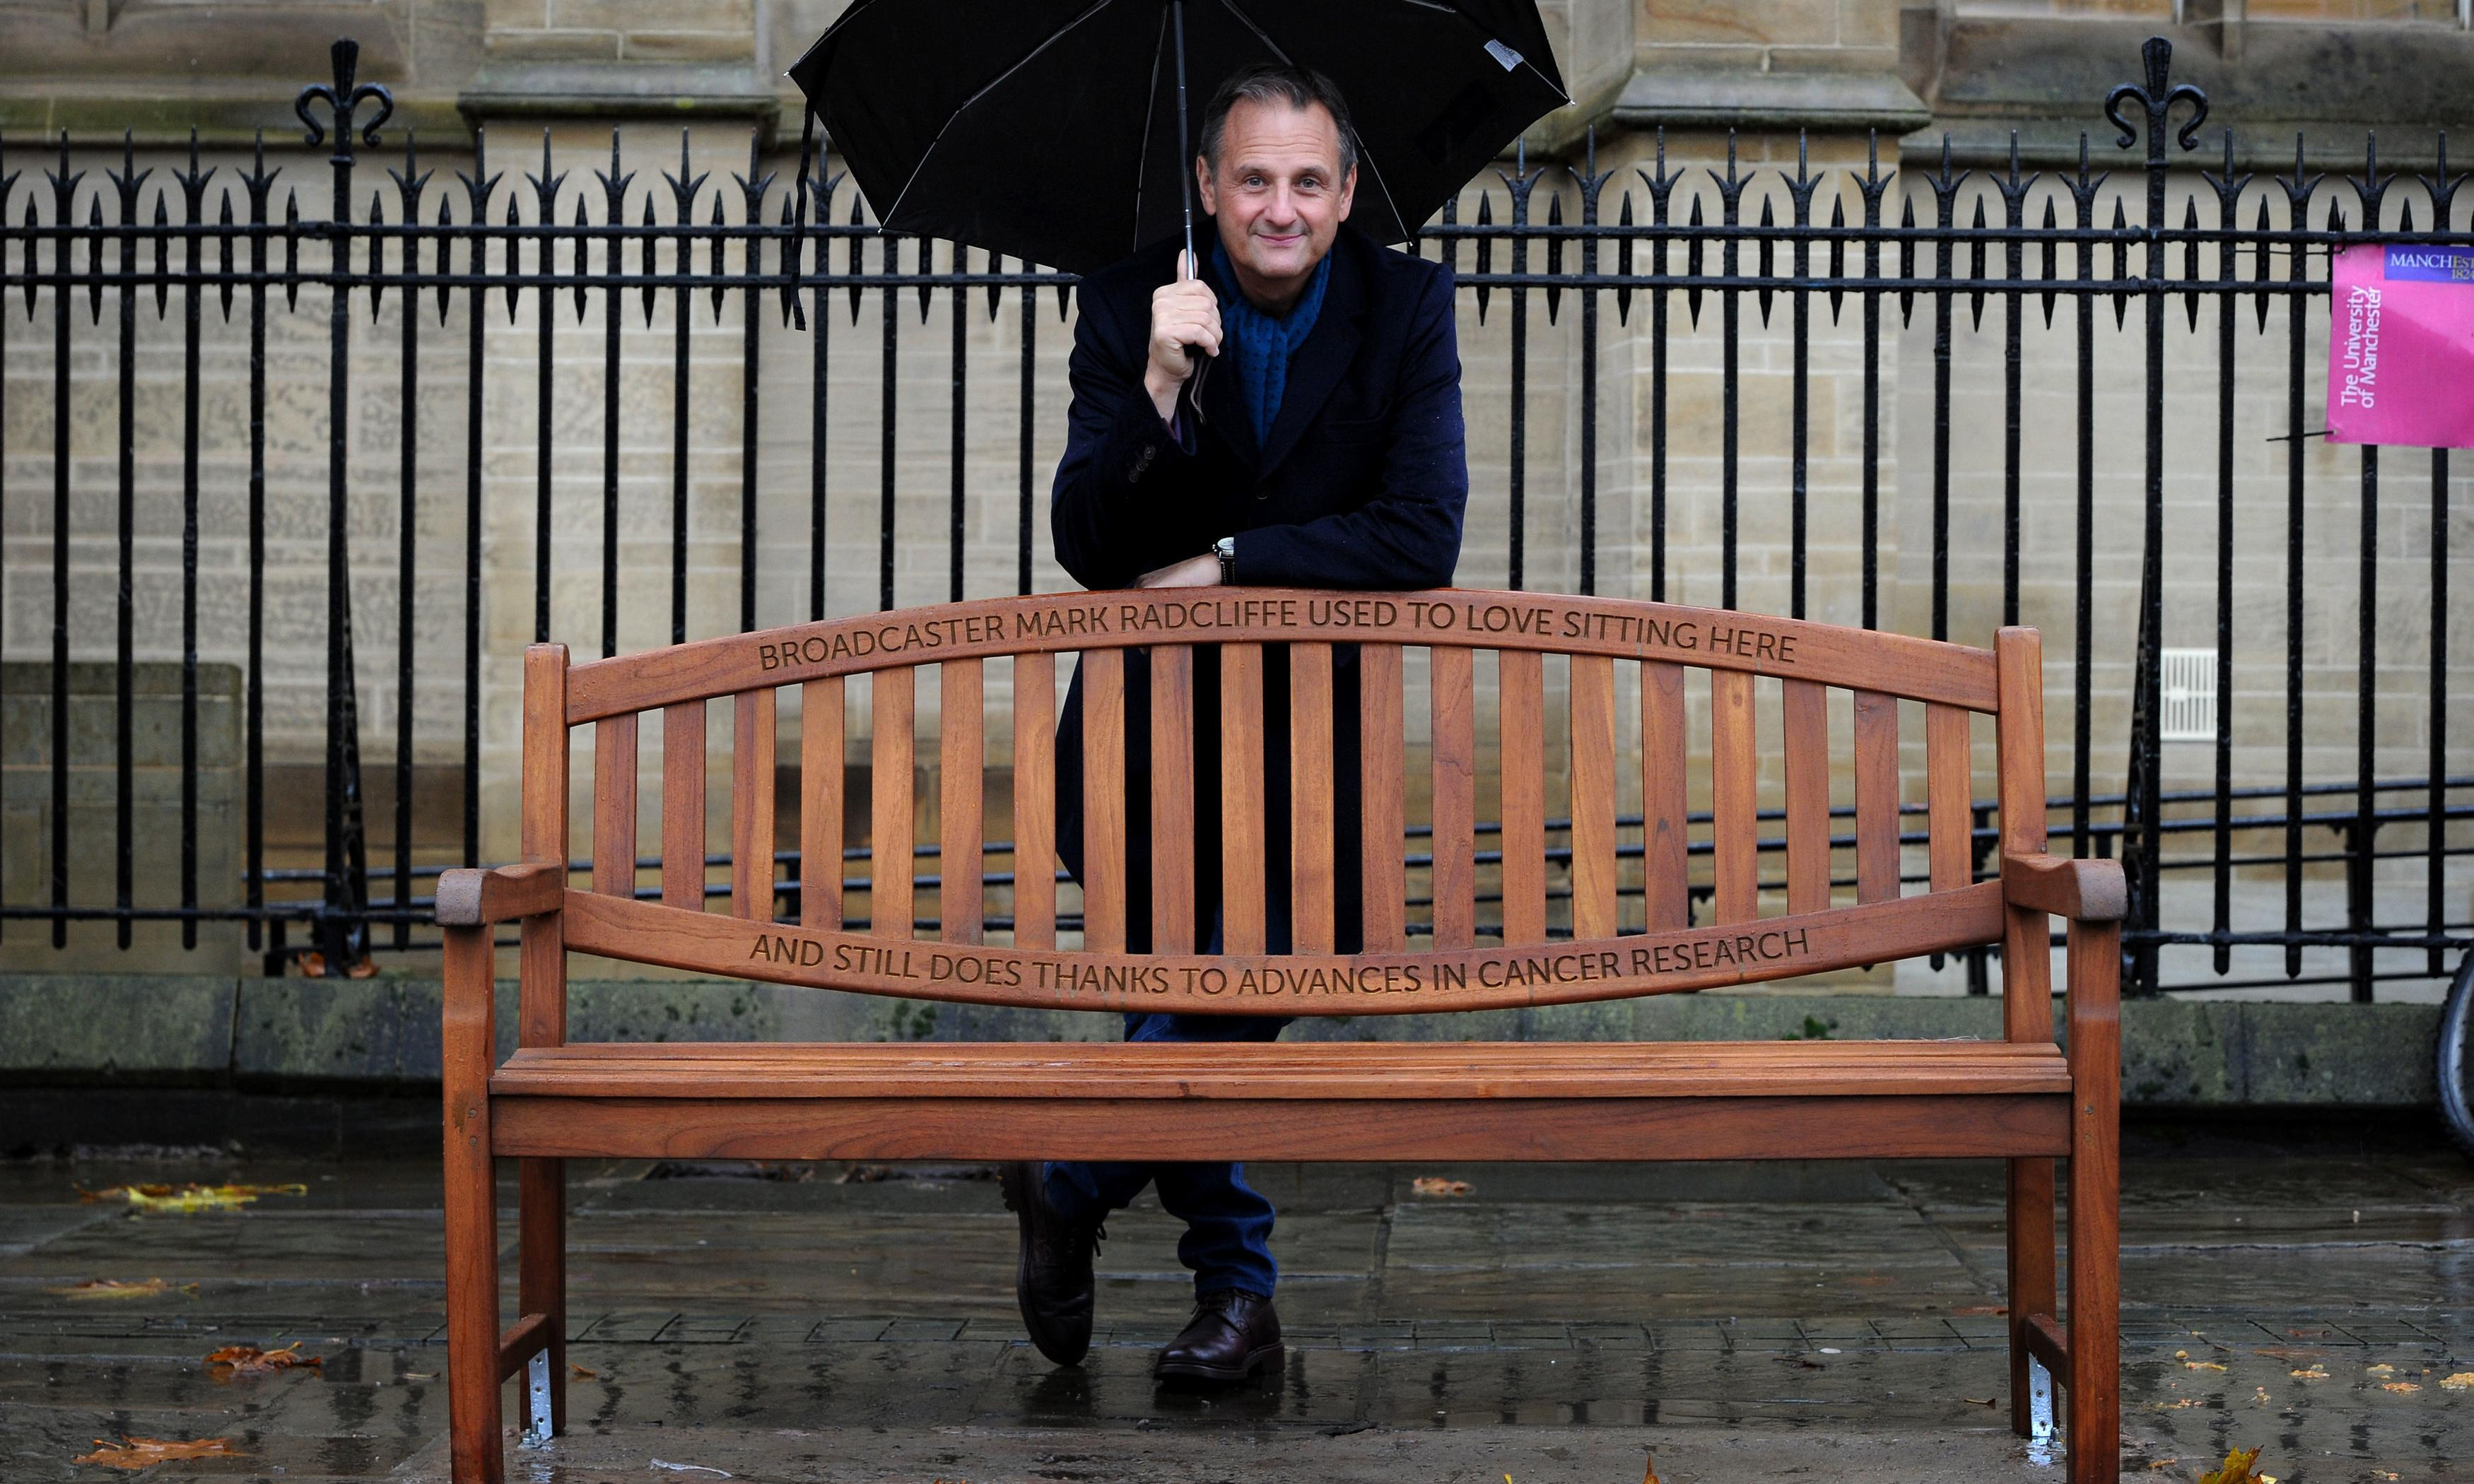 DJ Mark Radcliffe gets commemorative bench after cancer recovery